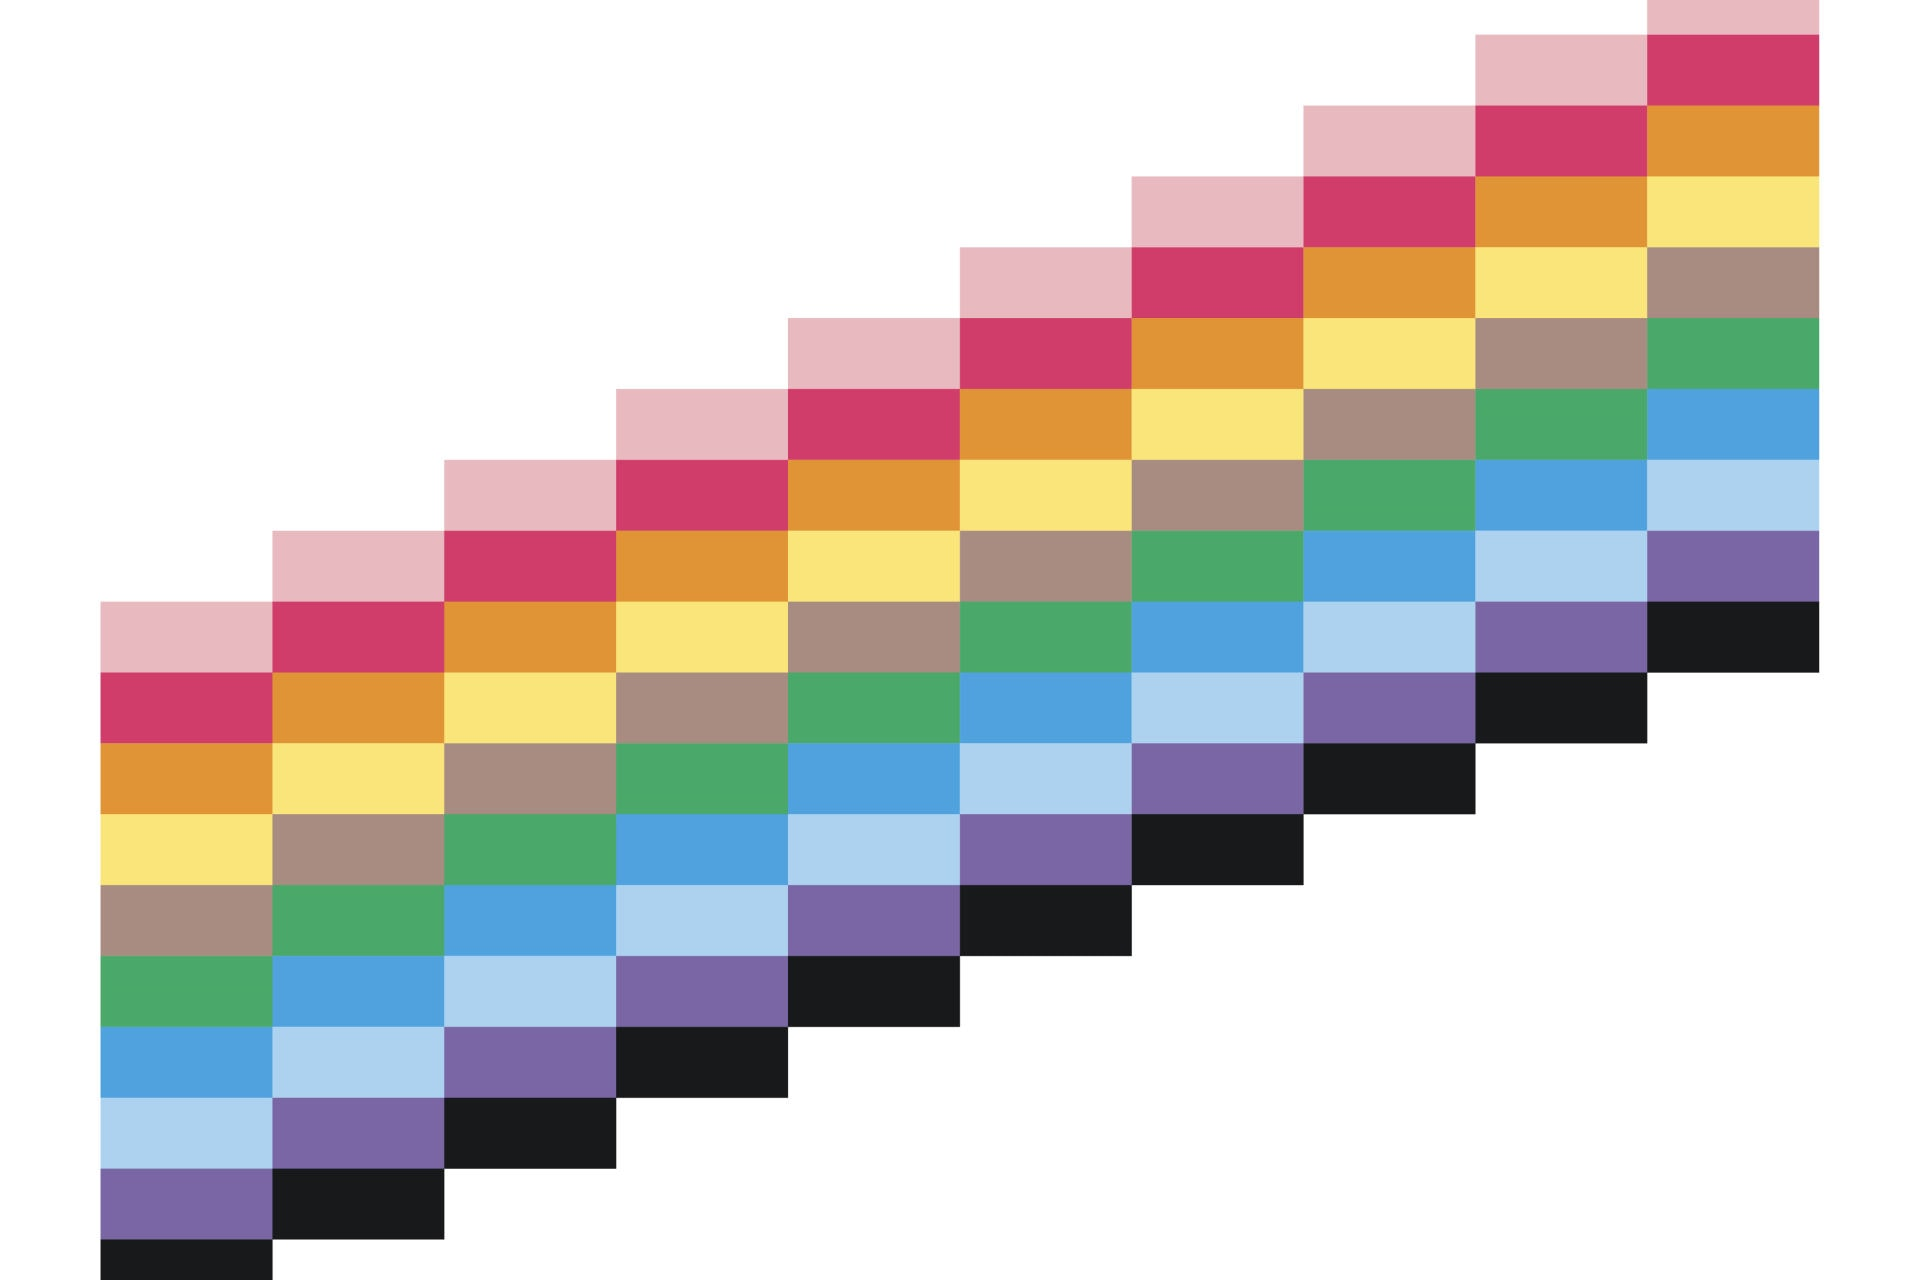 Trans & Gay Pride flags combined